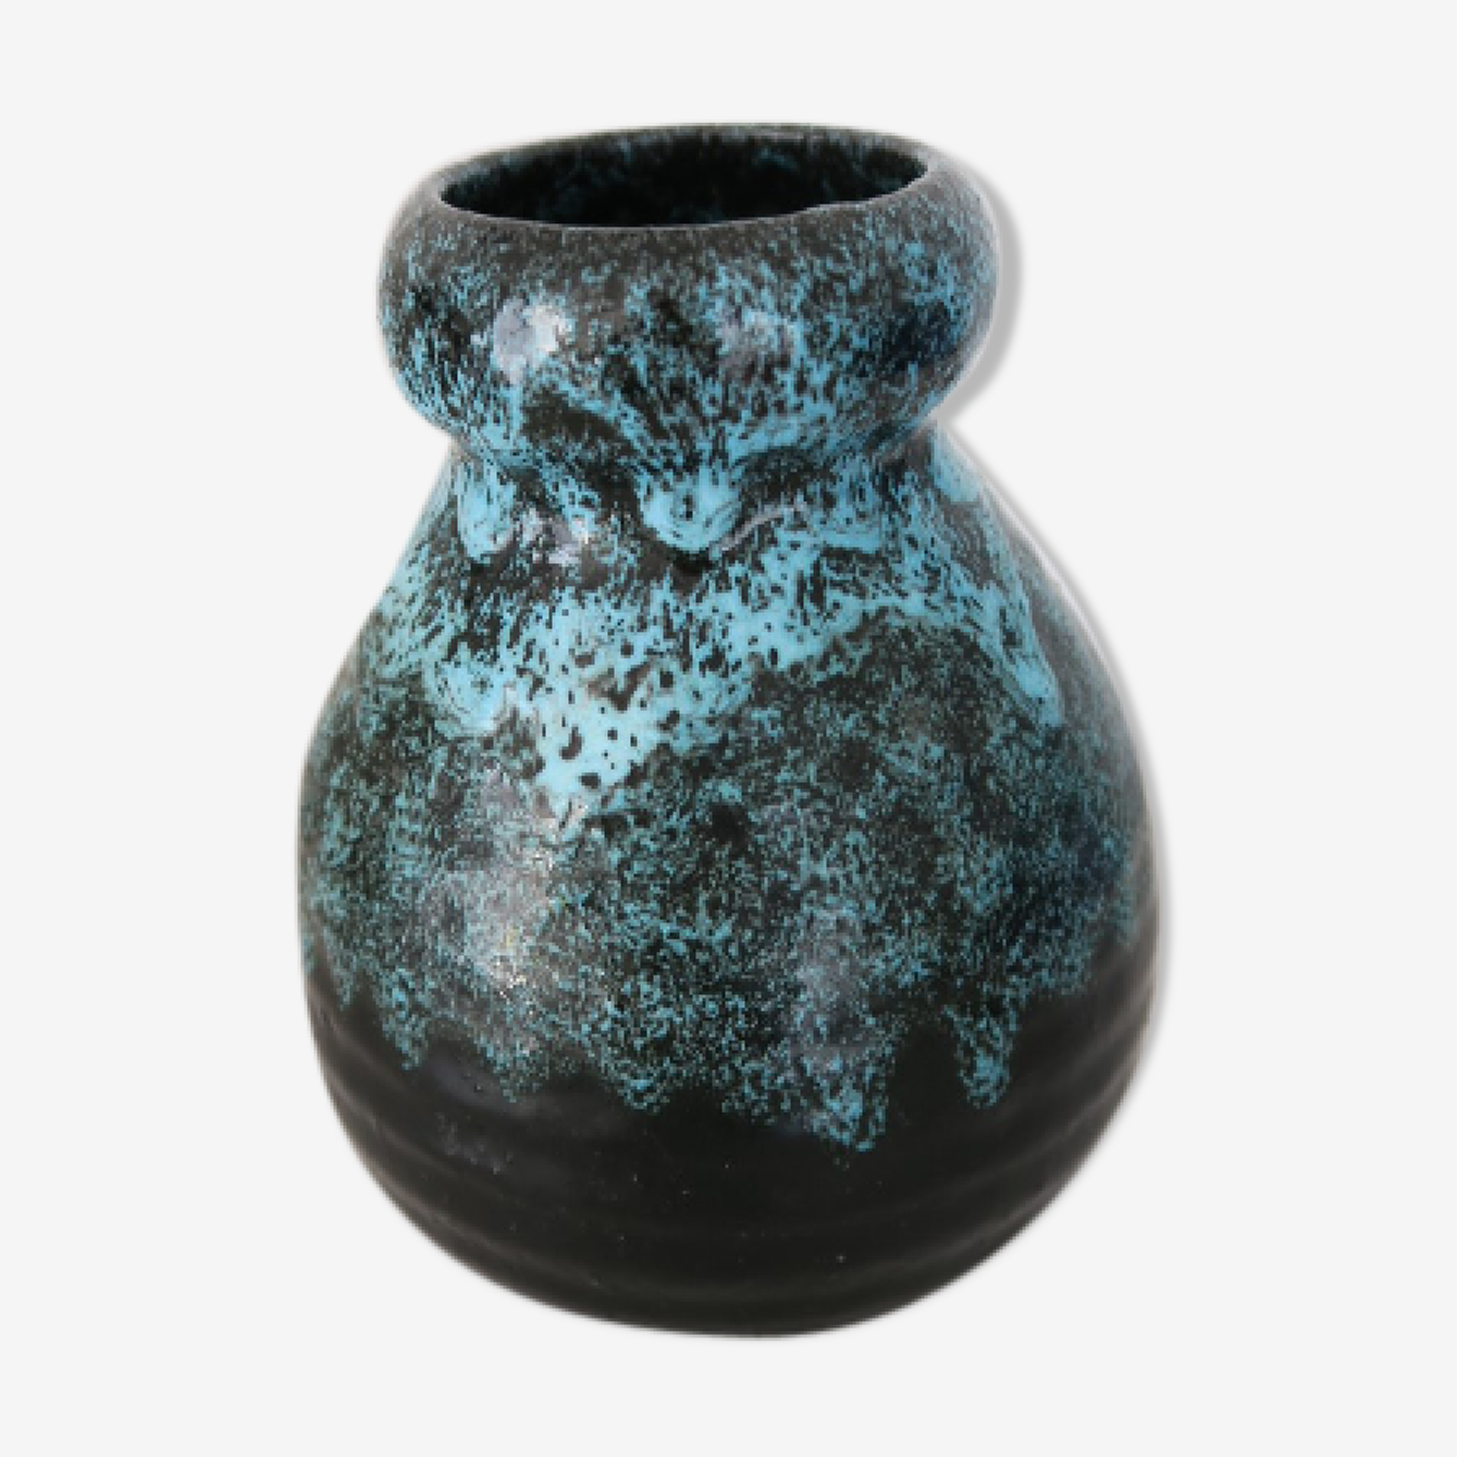 Accolay blue and Black ceramic vase 1950